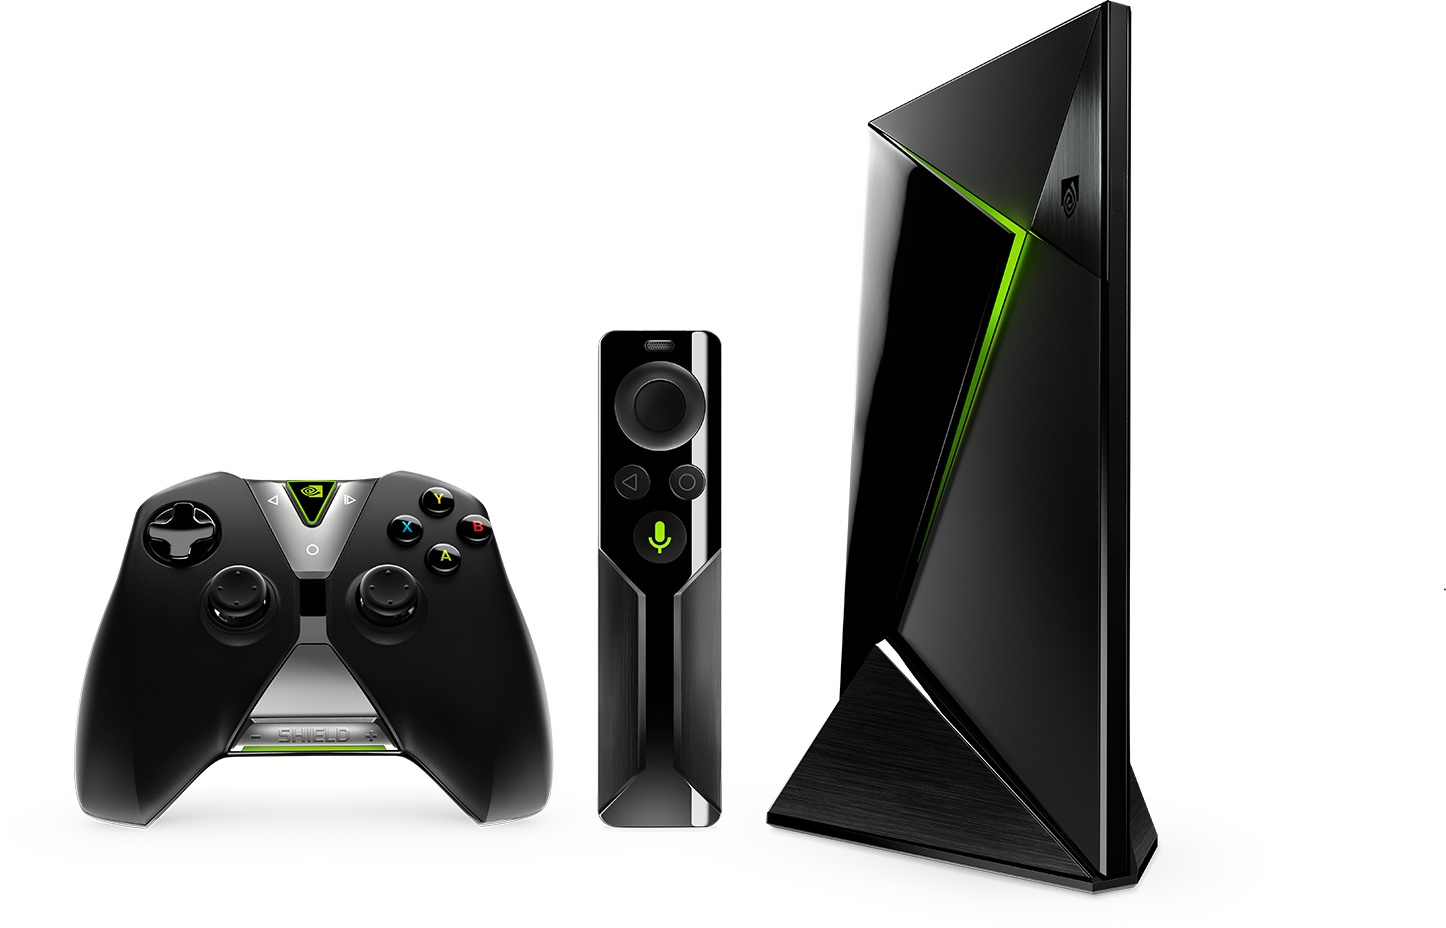 Alcatel one touch idol 3 compare tariffs deals amp prices - Nvidia Shield Android Tv With Controller And Remote